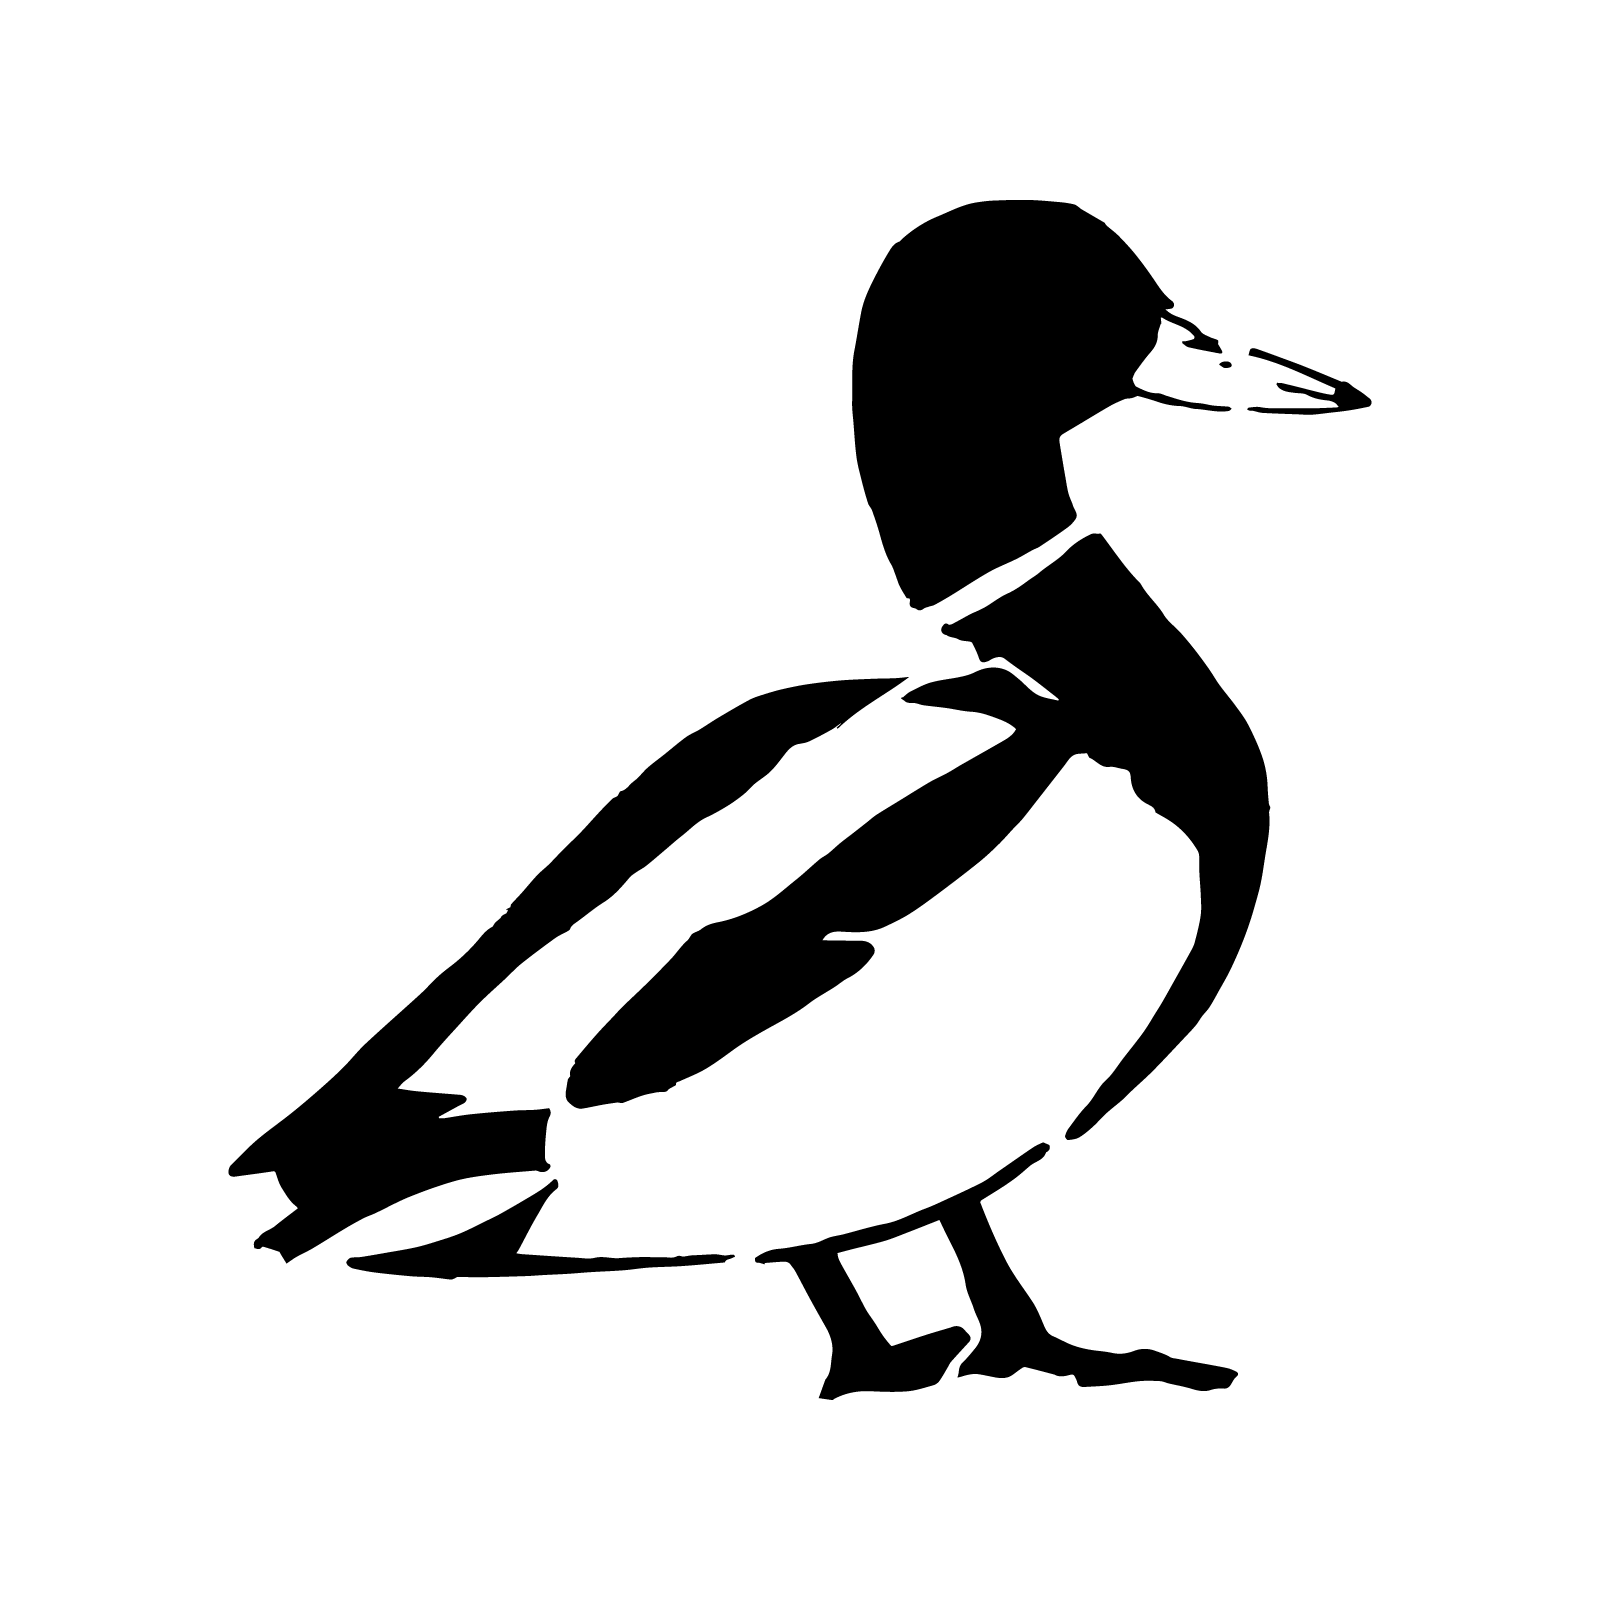 Penguin Stencil for Crafts & Walls | Stenciling, Laser cutting and ...